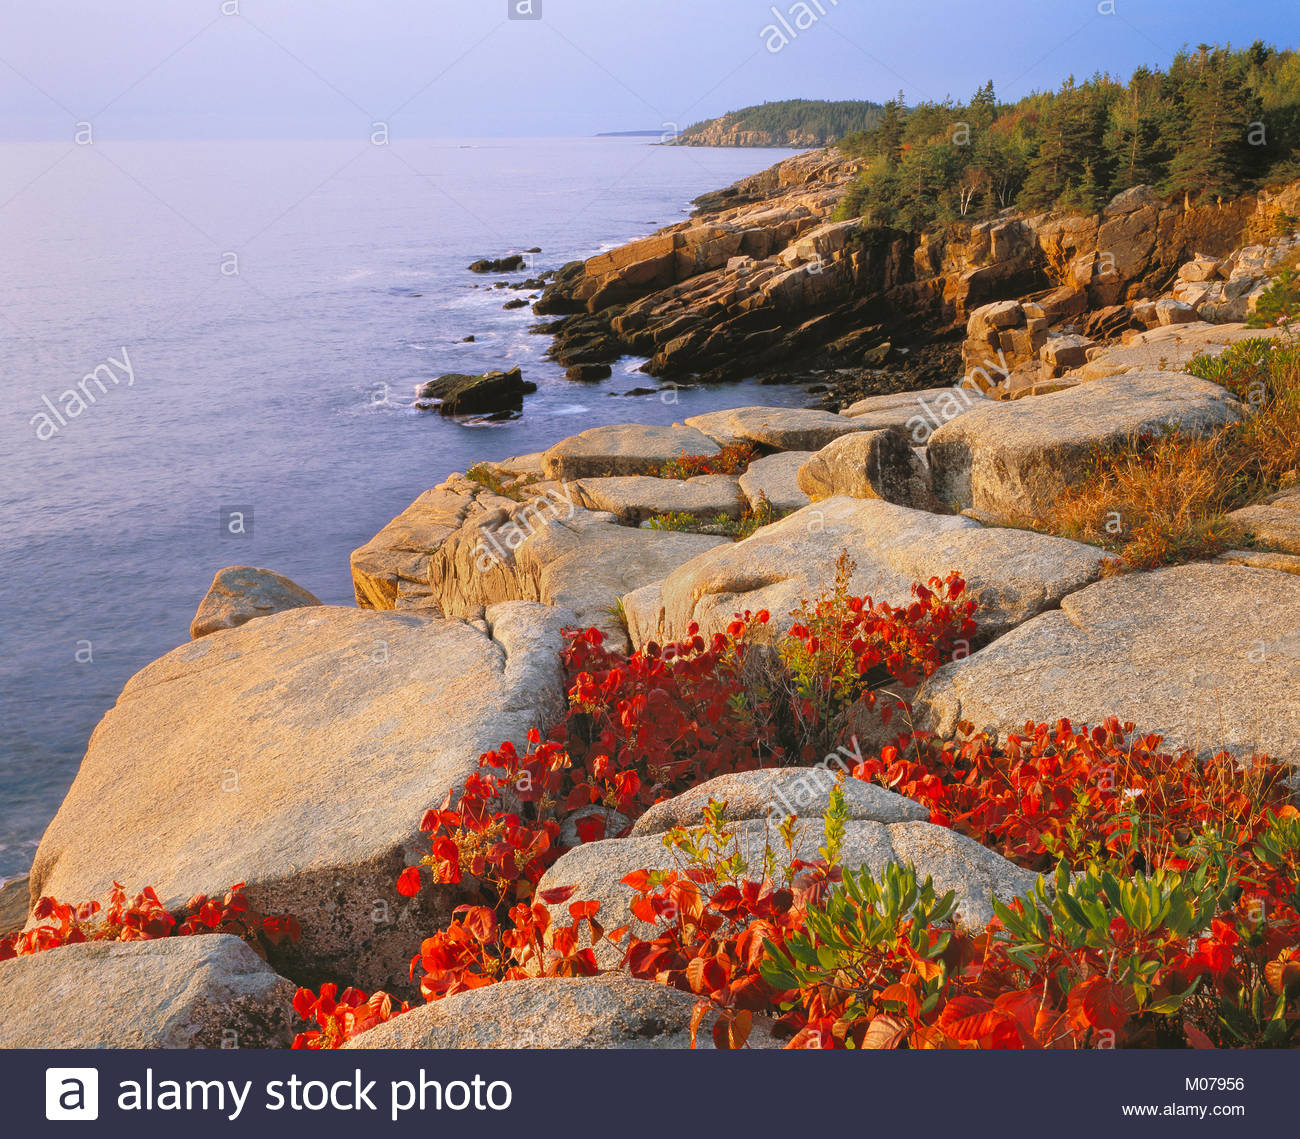 0901-1003LVT  George H. H. Huey  Poison ivy [autumn] growing in granite along the Ocean Trail. Mt. Desert Island. - Stock Image